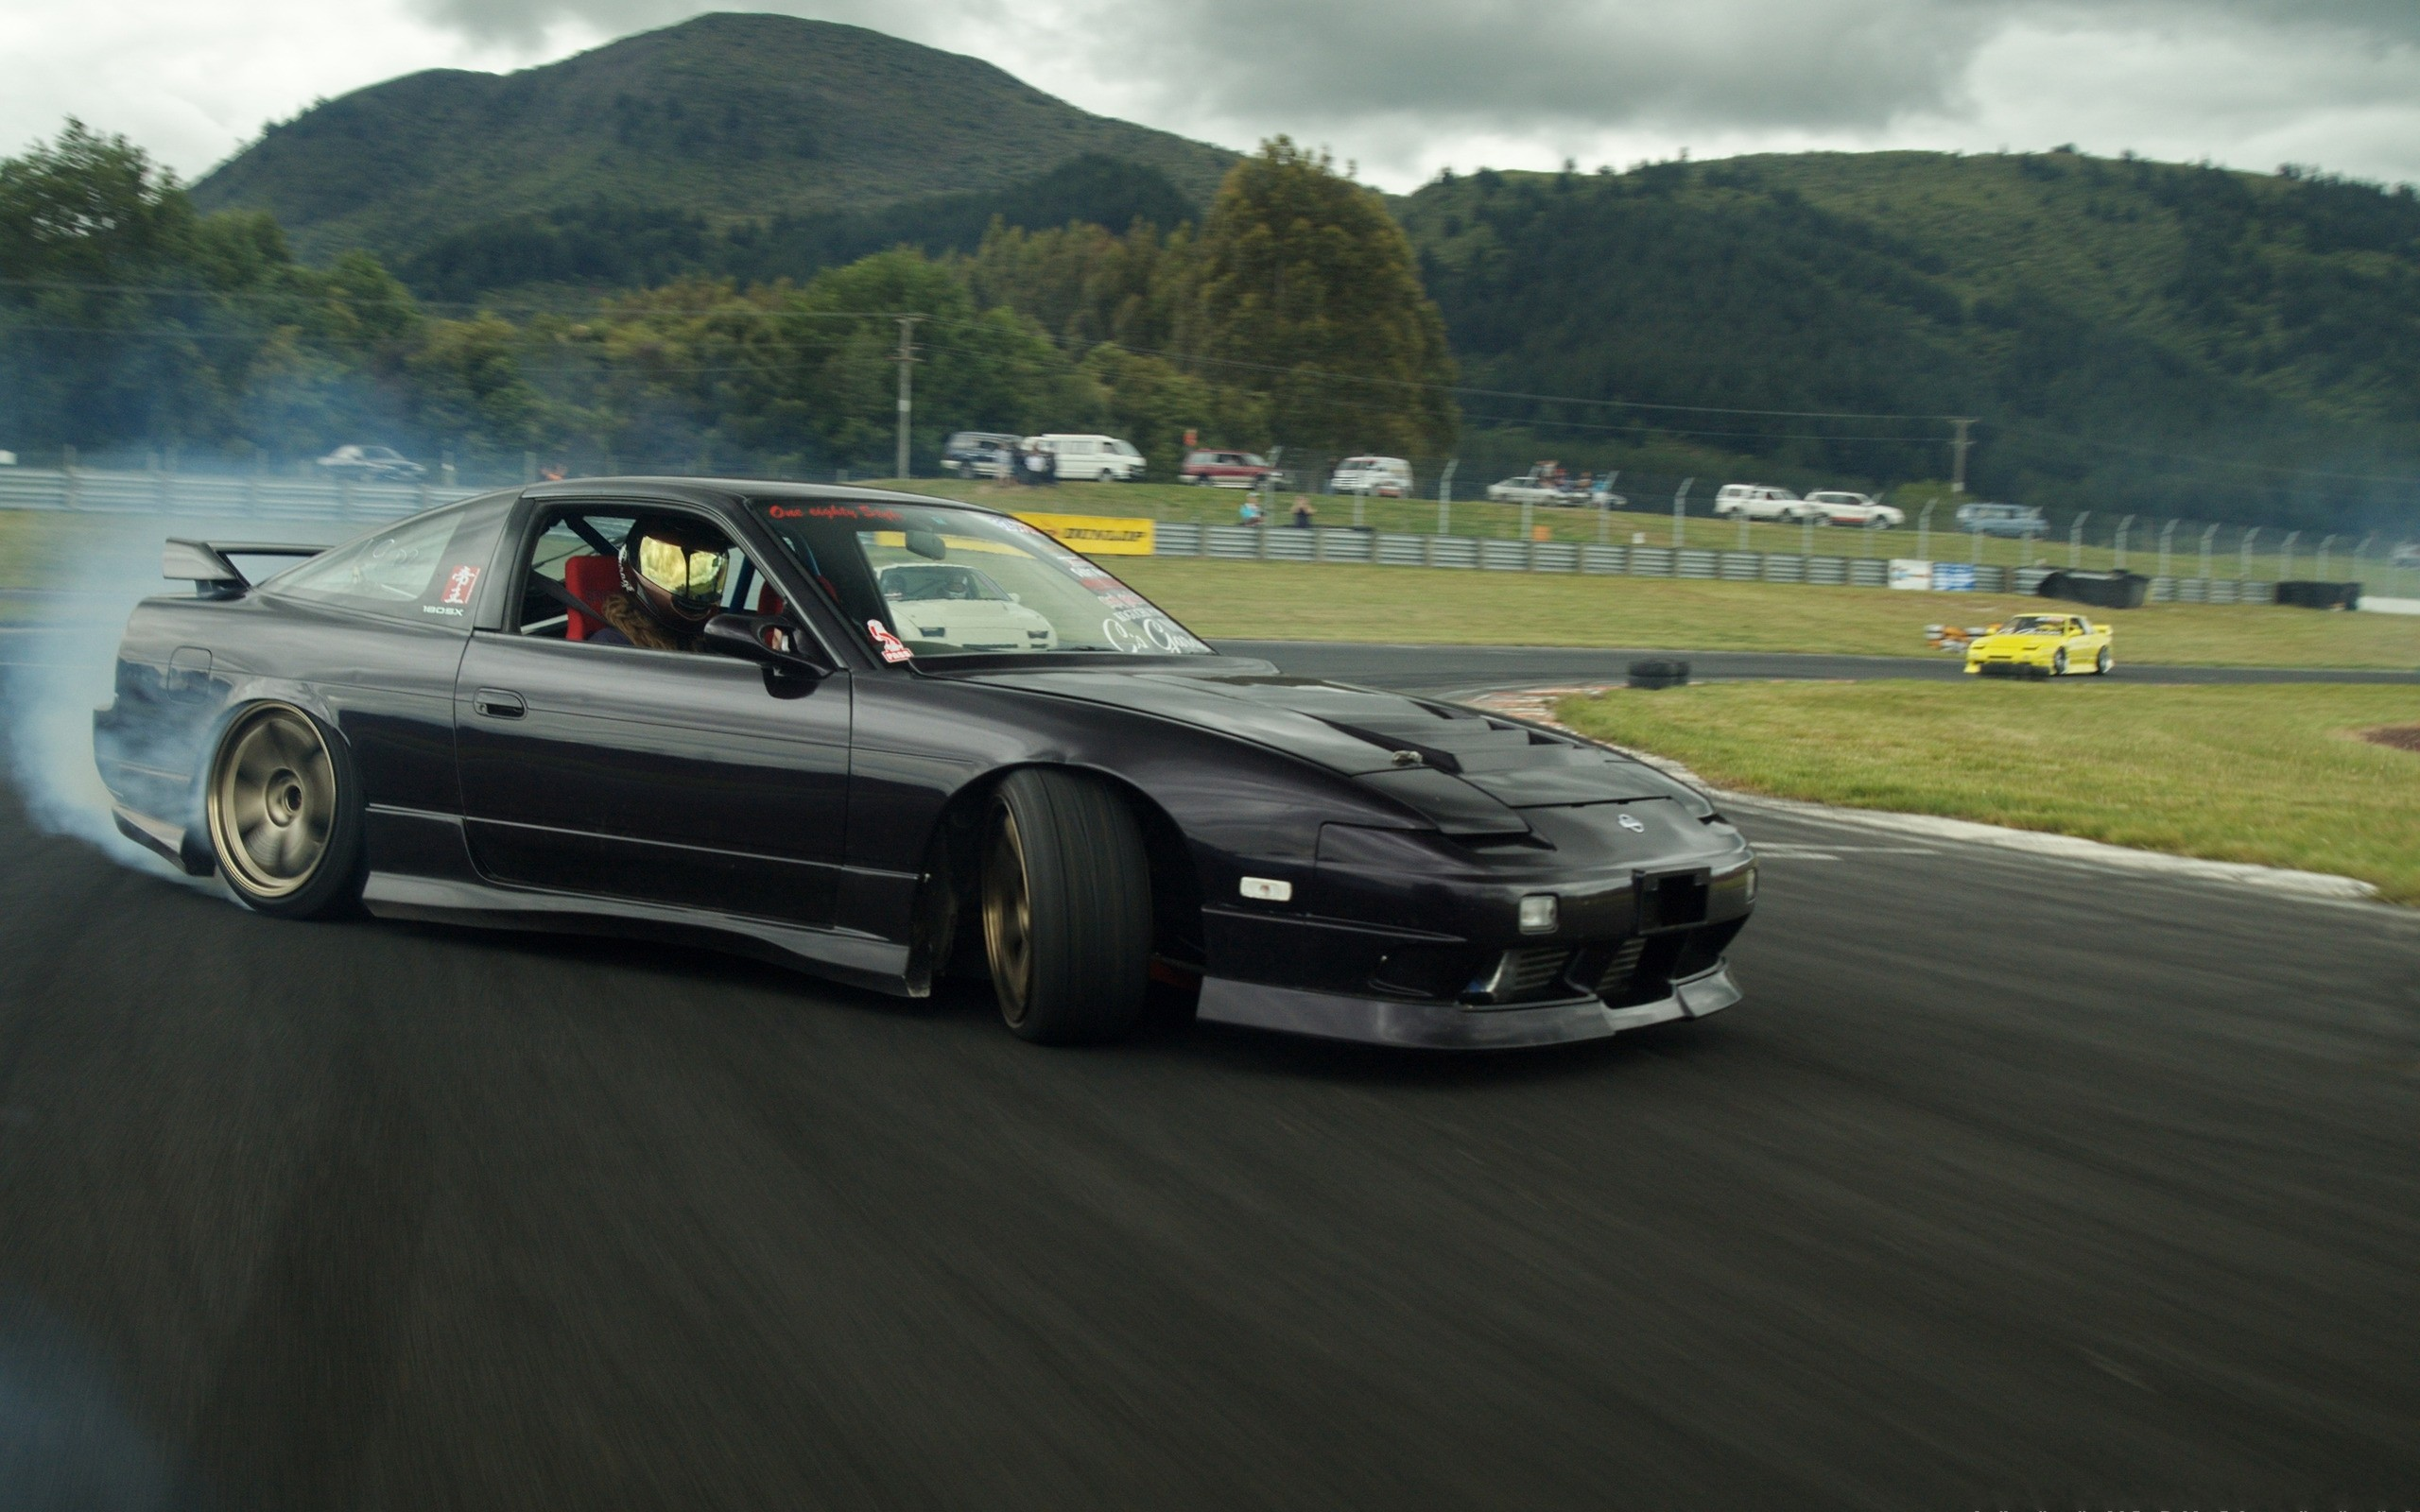 Drifting cars nissan nissan 180sx wallpaper backgroundDrifting Cars Wallpaper